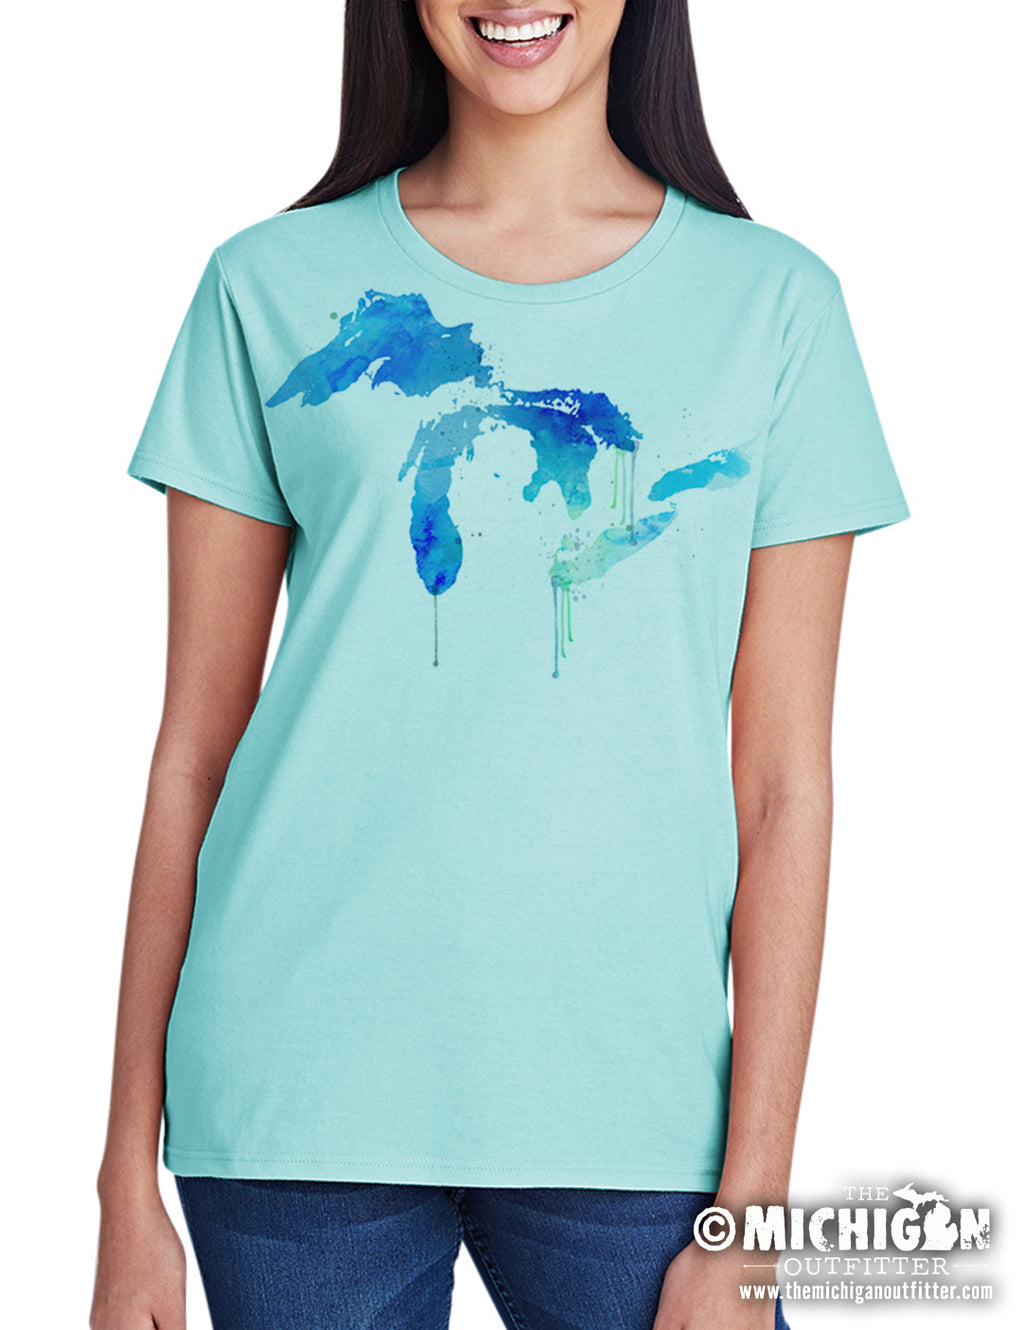 Michigan Watercolor Lakes - Women's T-Shirt - Teal Ice